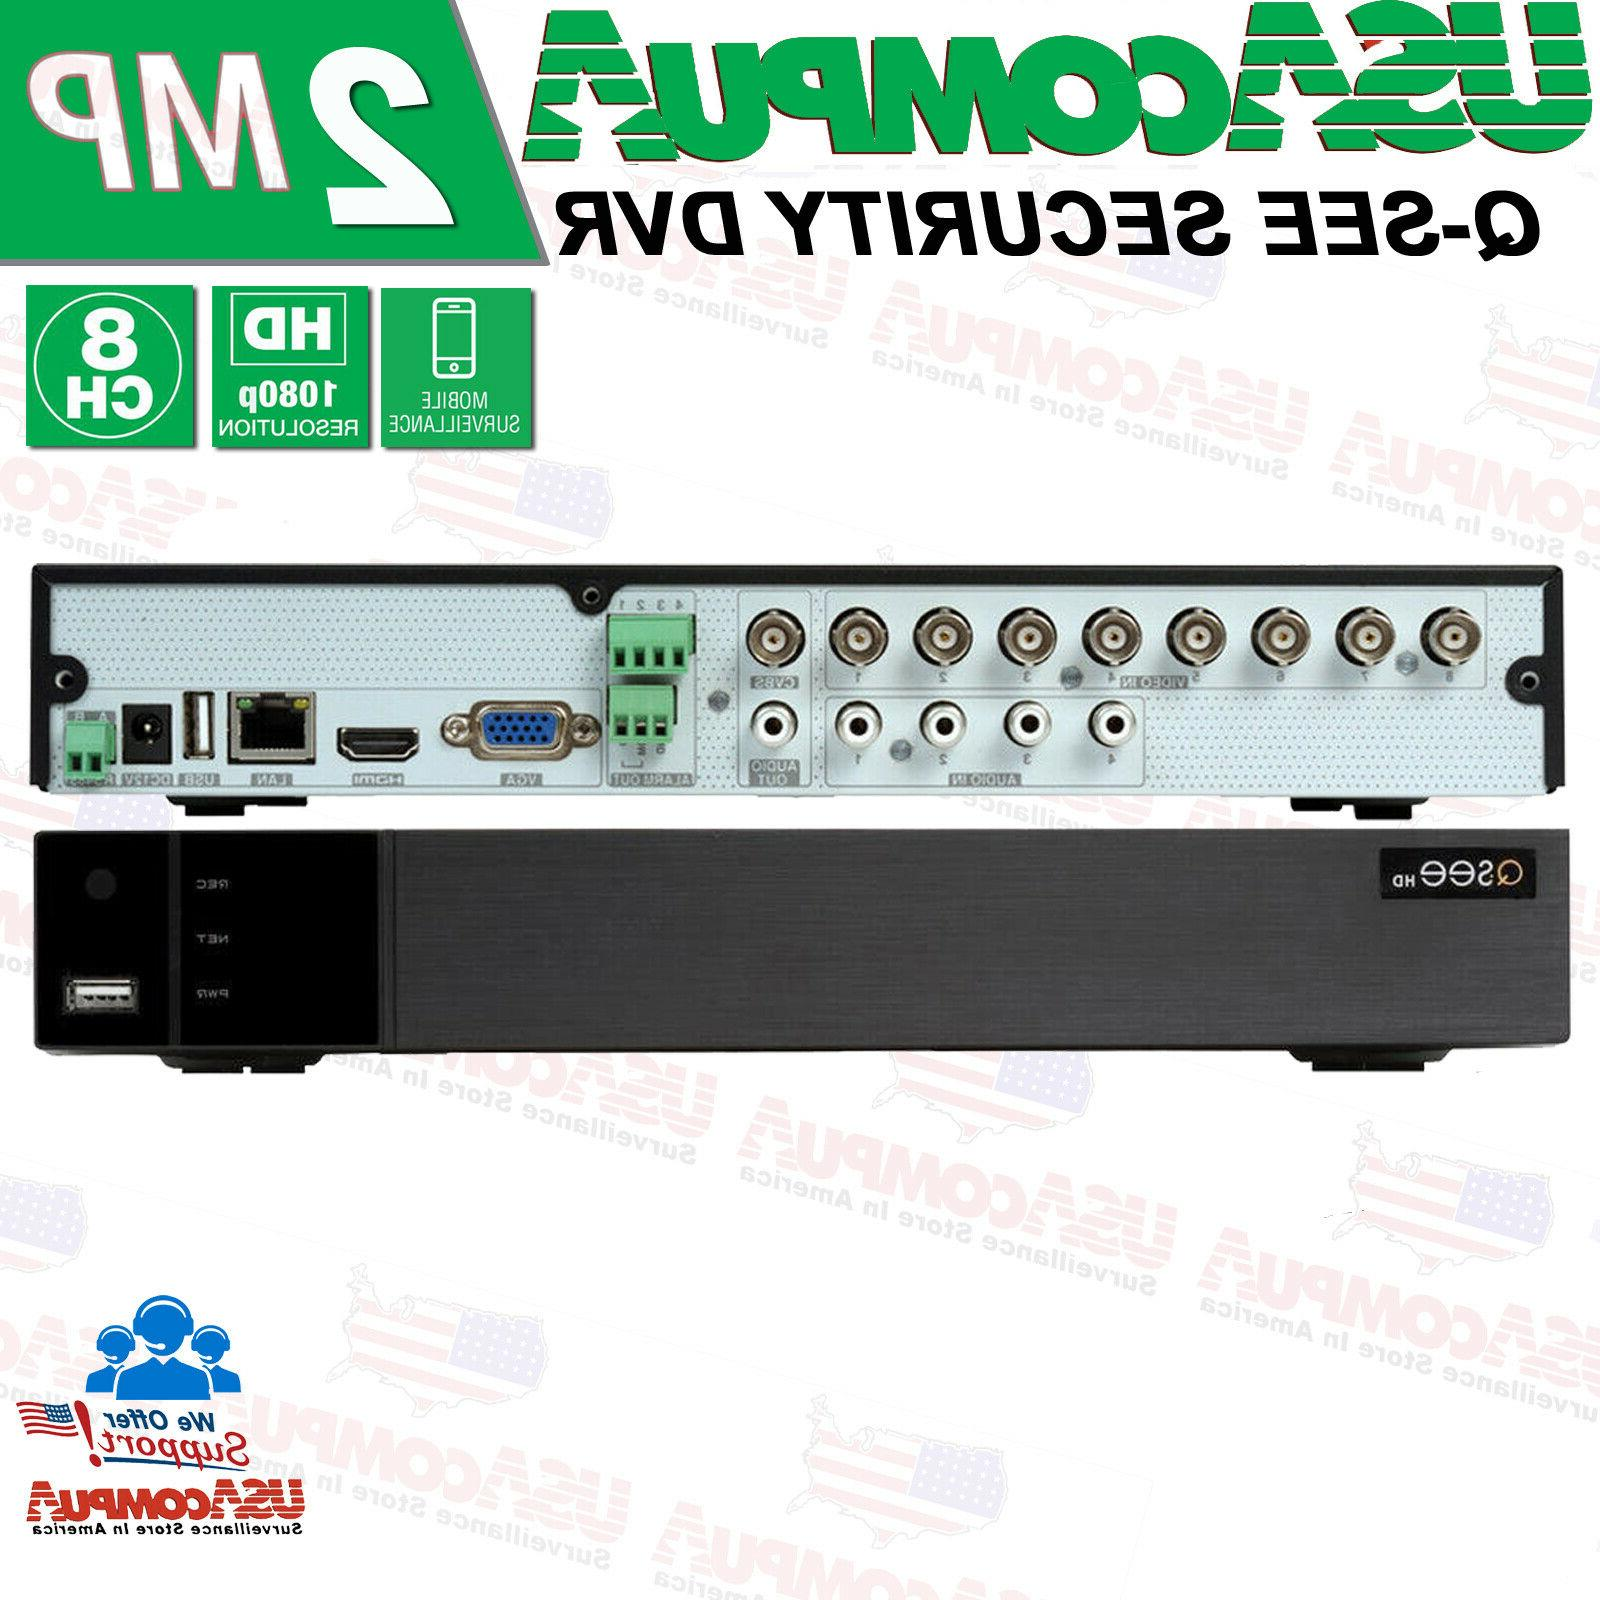 New Q-See 8CH 1080p Analog DVR Security Cameras System CCTV All Included